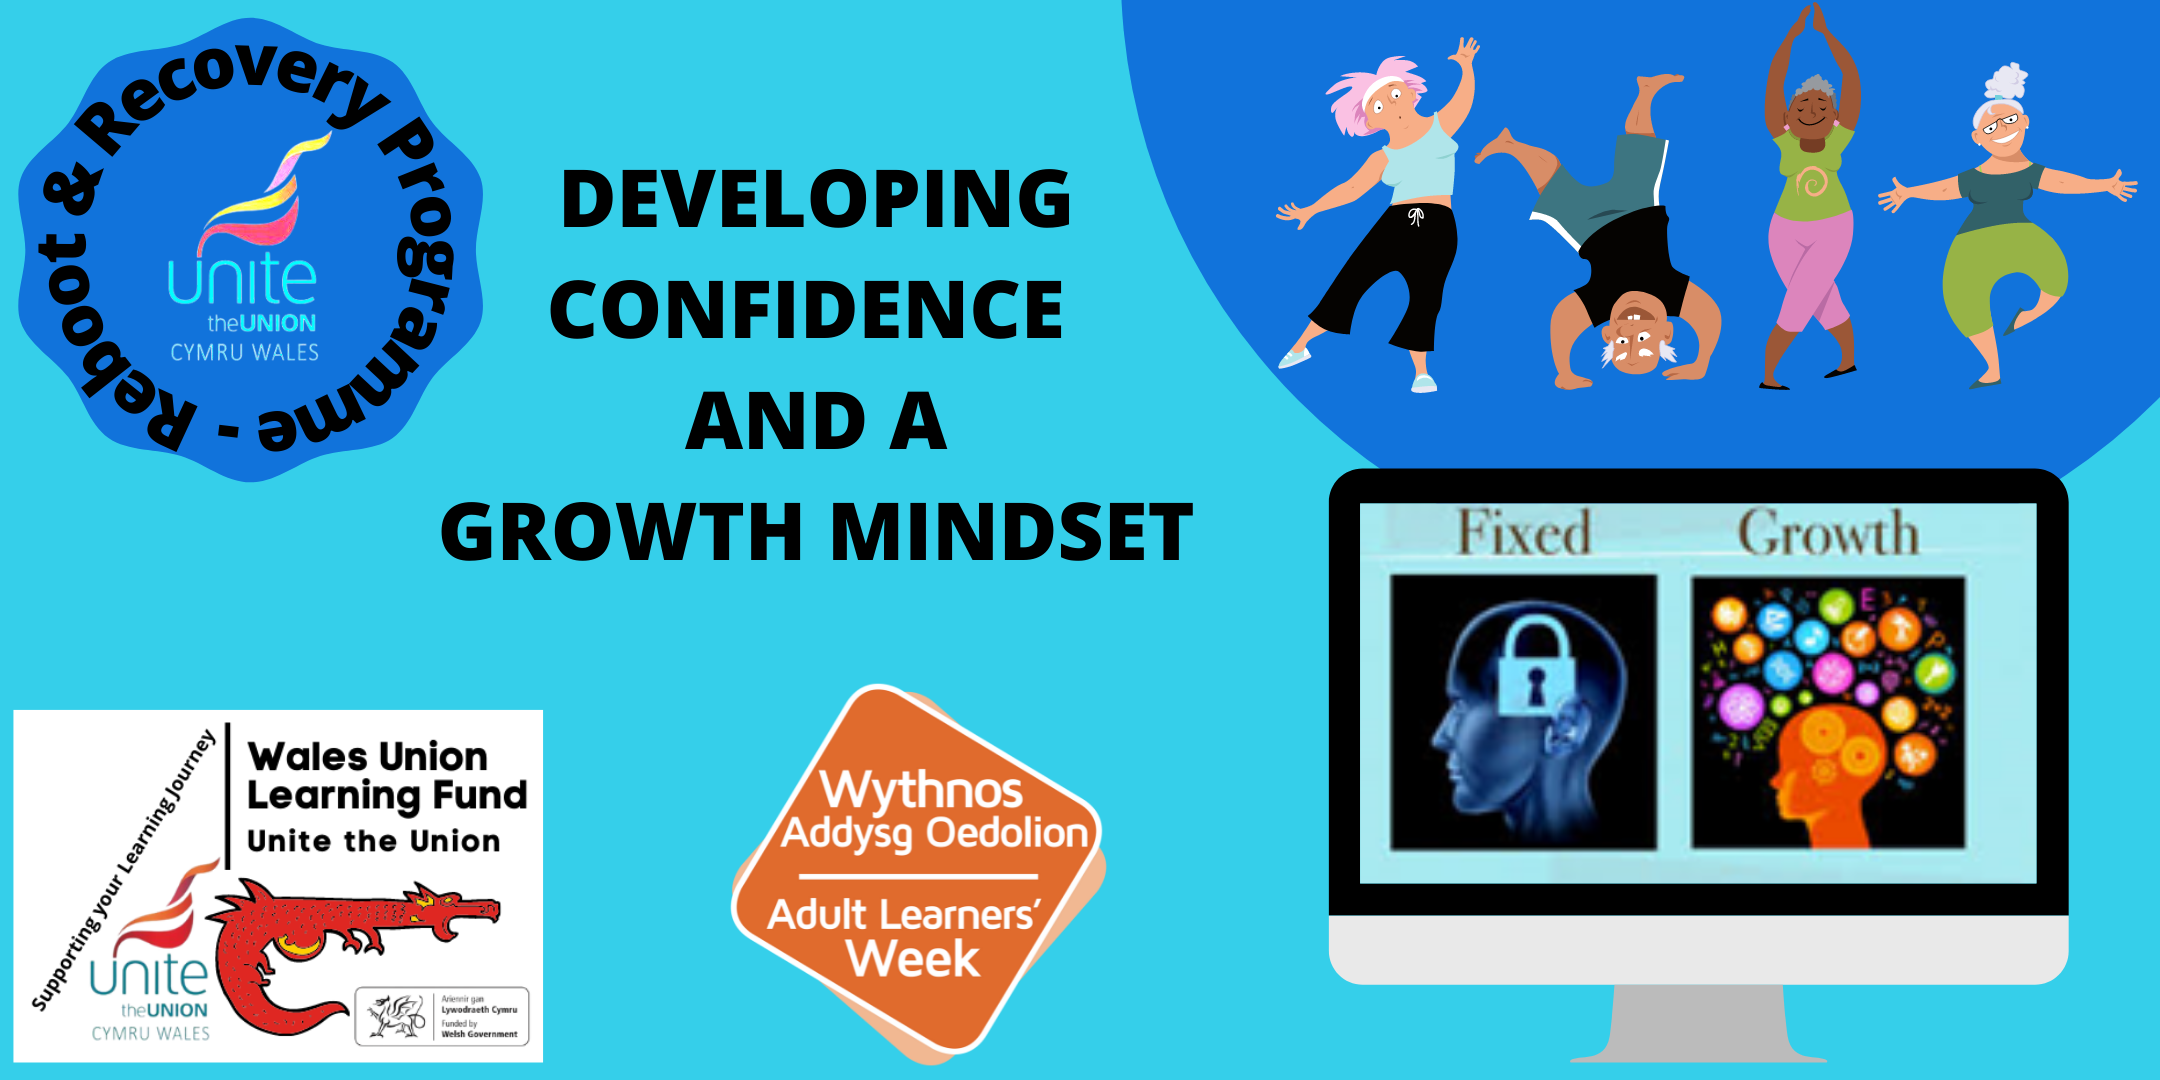 reboot-recovery-developing-confidence-and-a-growth-mindset